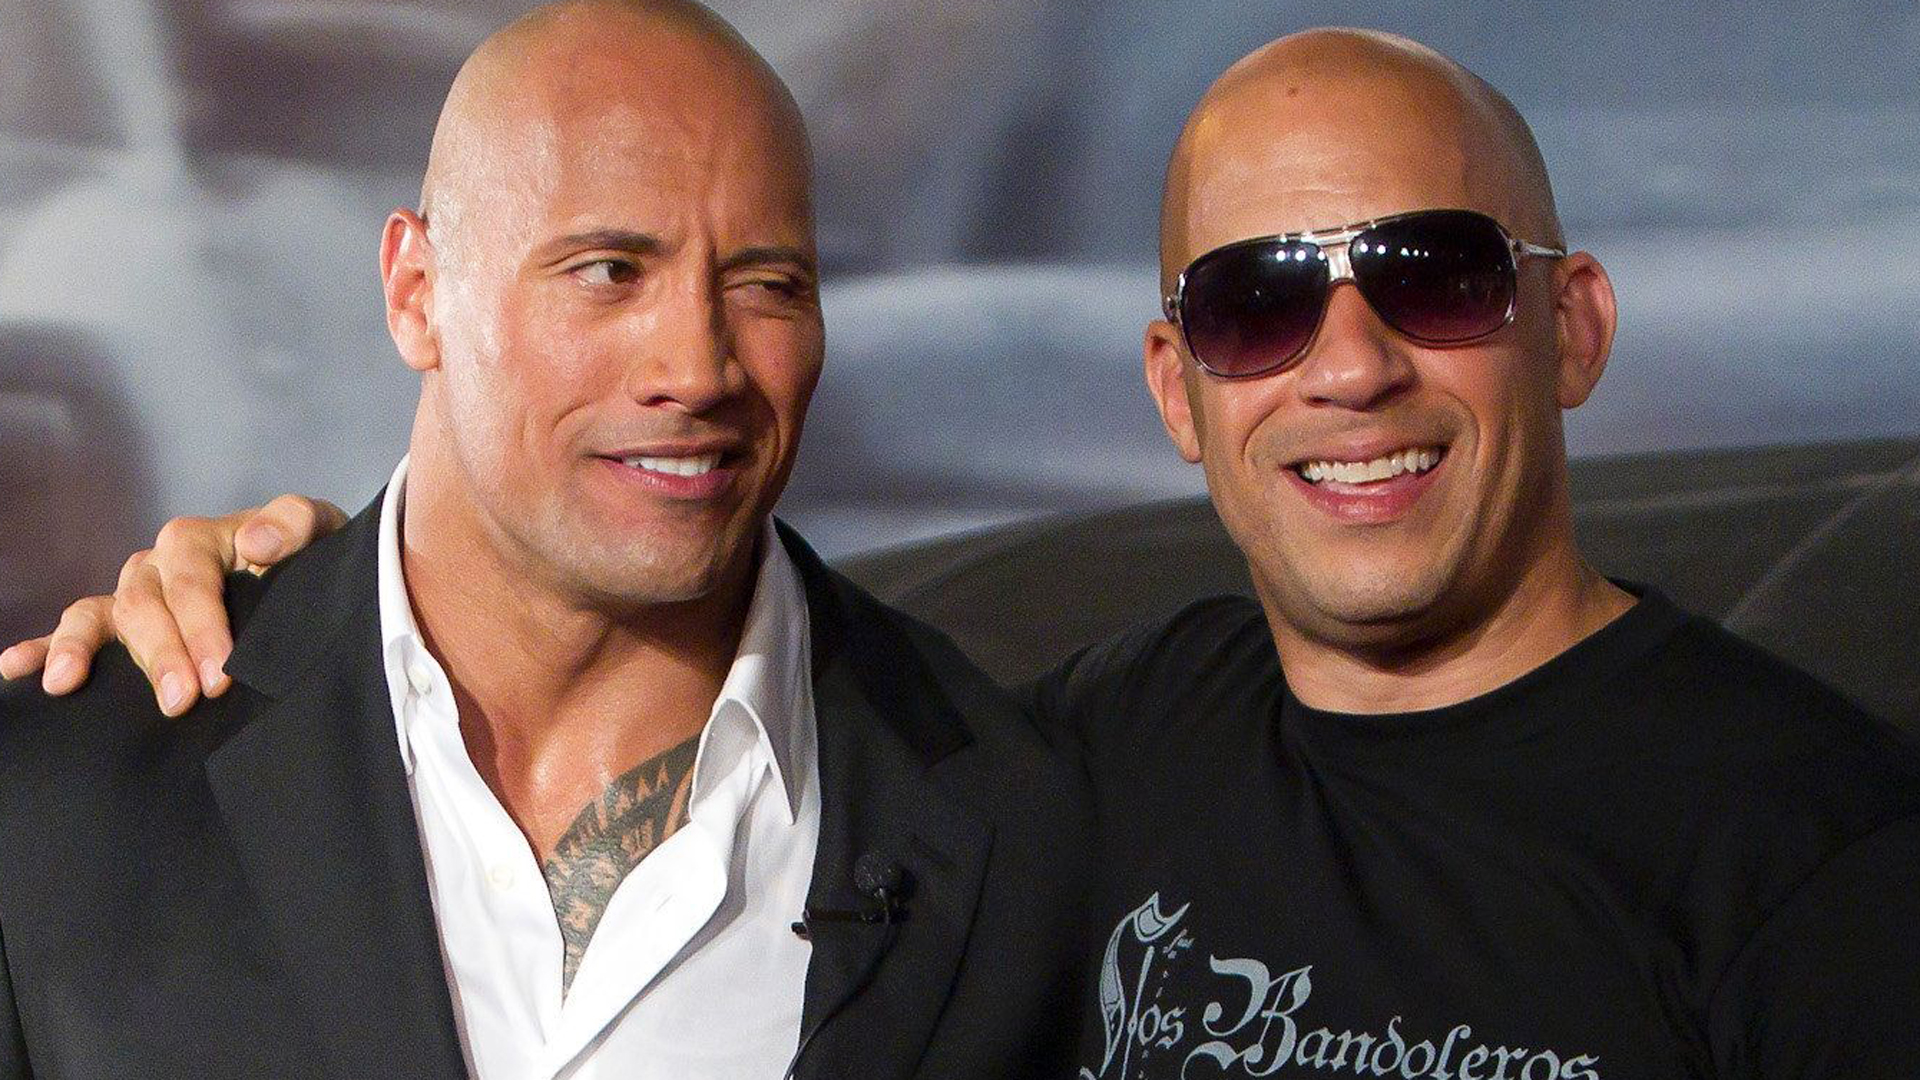 What Really Went Down Between The Rock And Vin Diesel